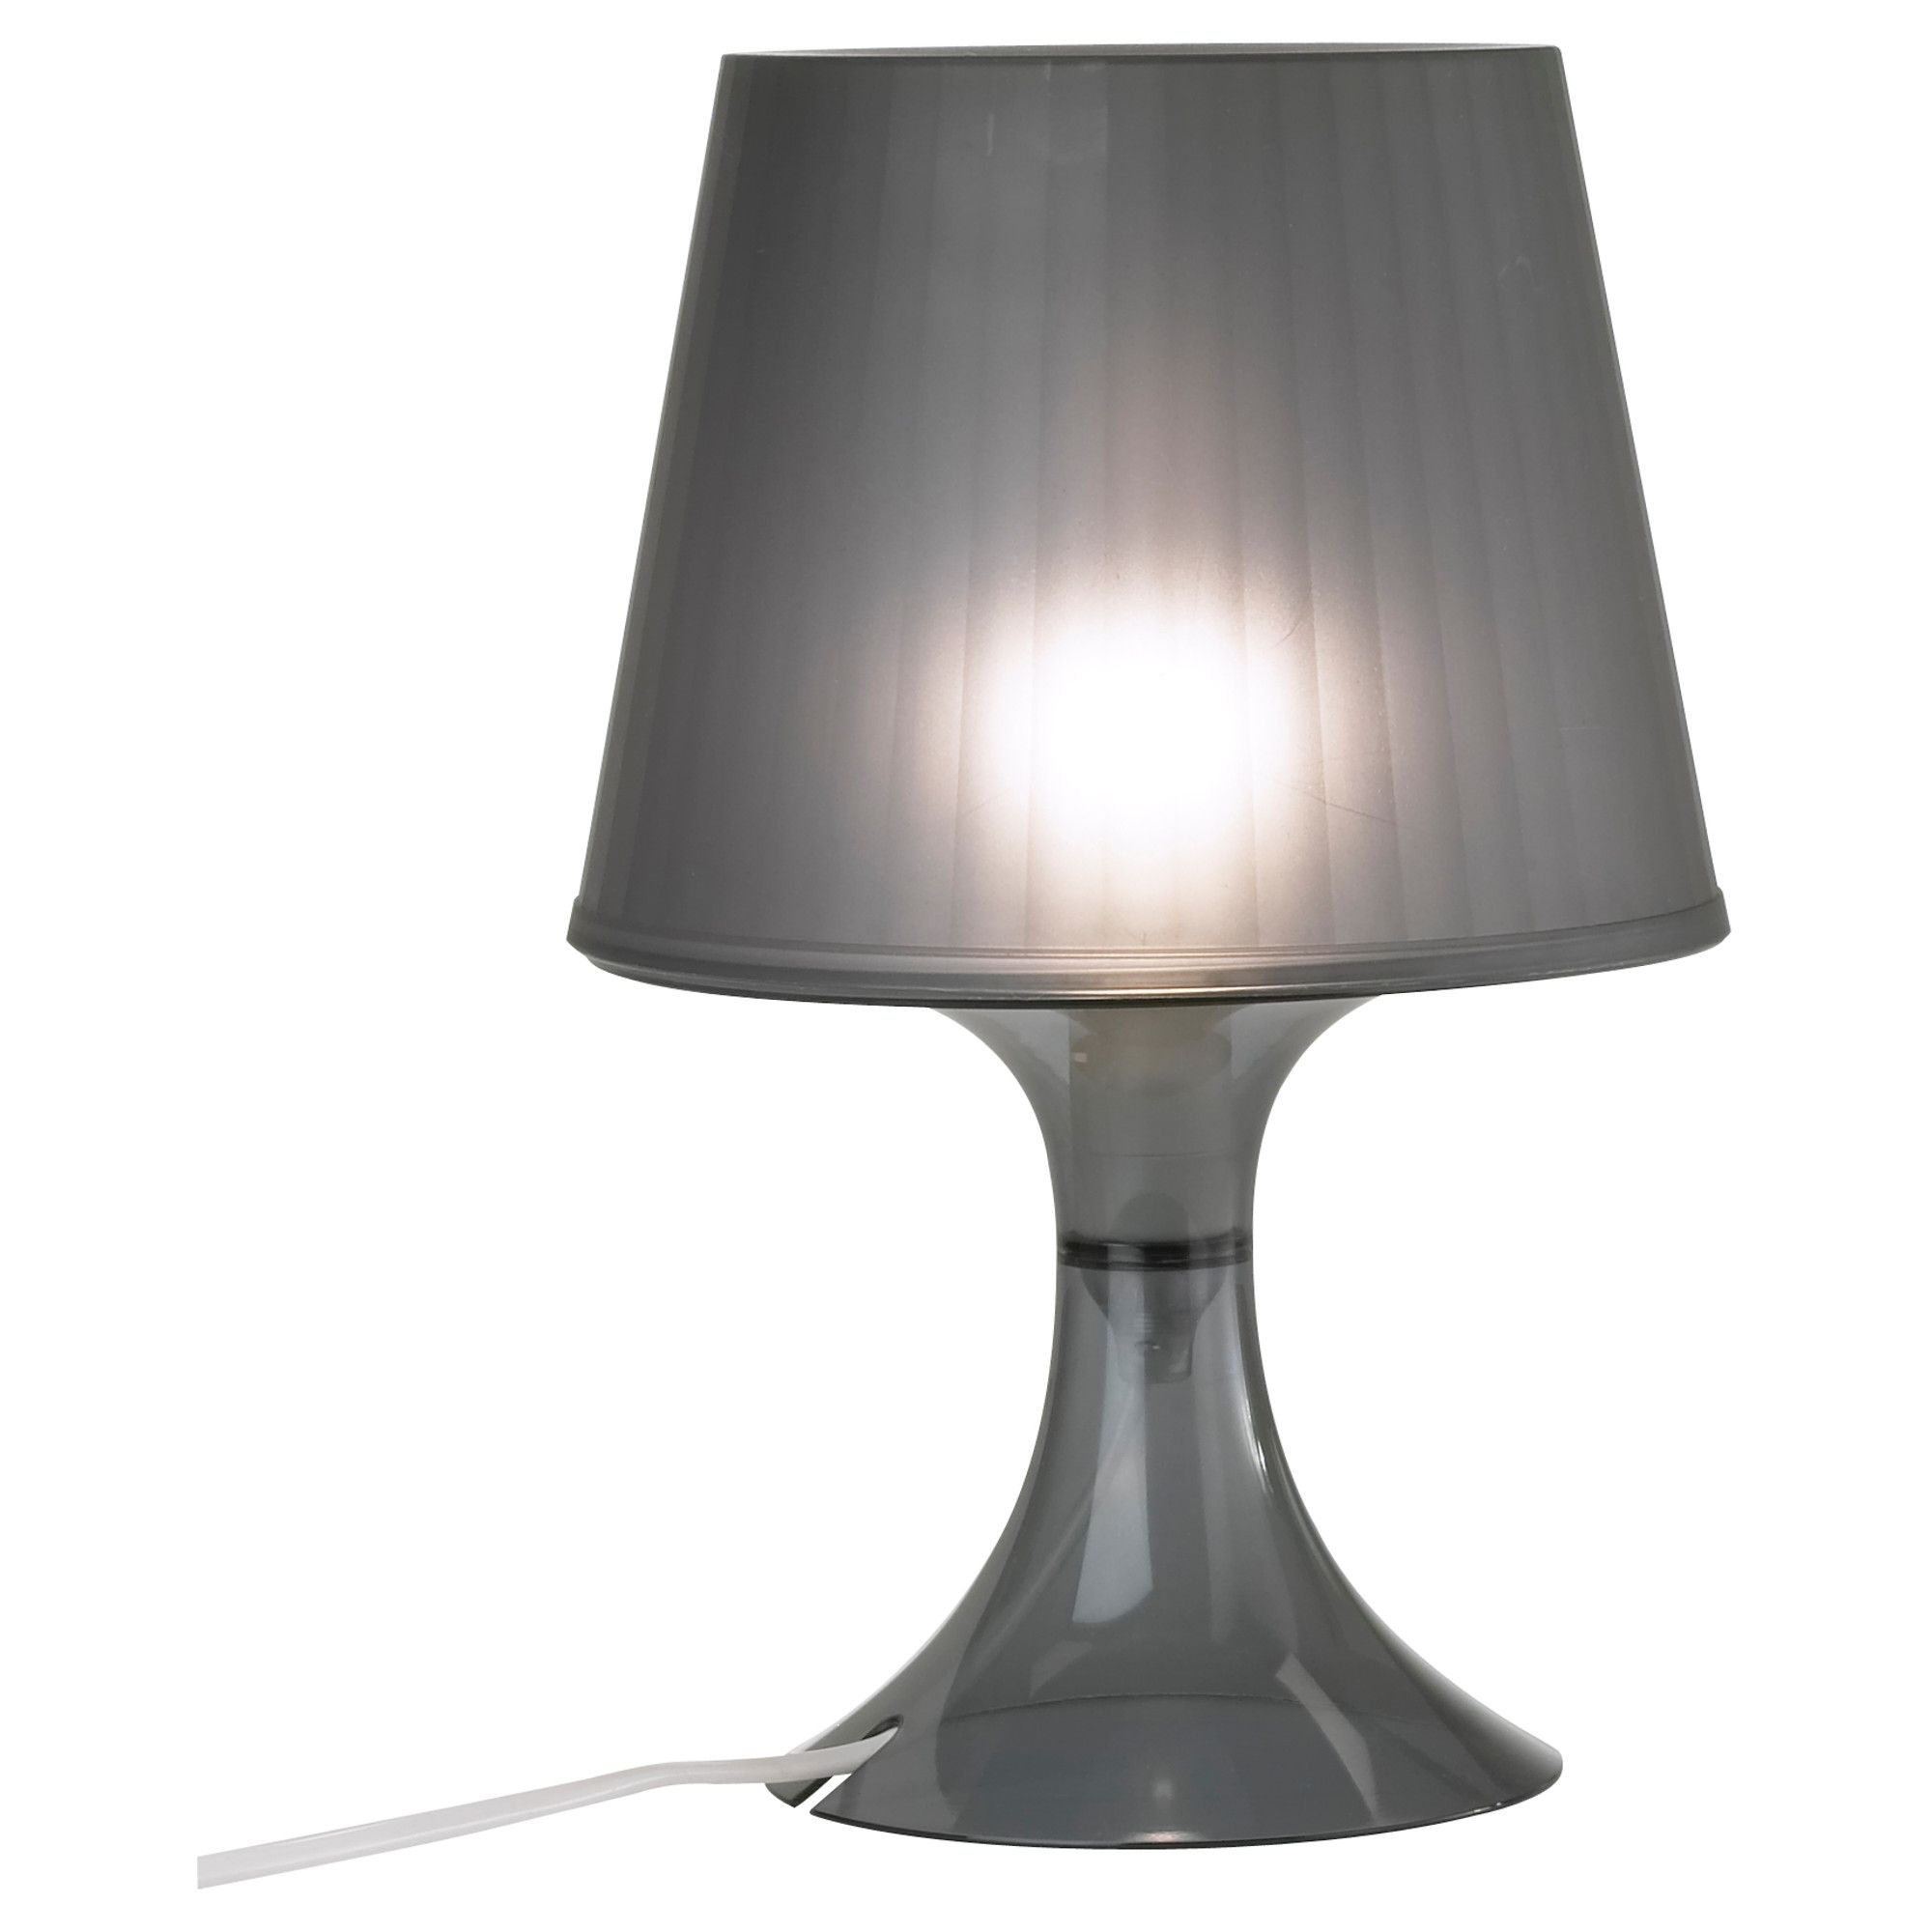 Lampan Table Lamp – Black – Ikea A Lamp Similar To Jenna's, Sitting Regarding Famous Living Room Table Lamps At Ikea (View 3 of 15)